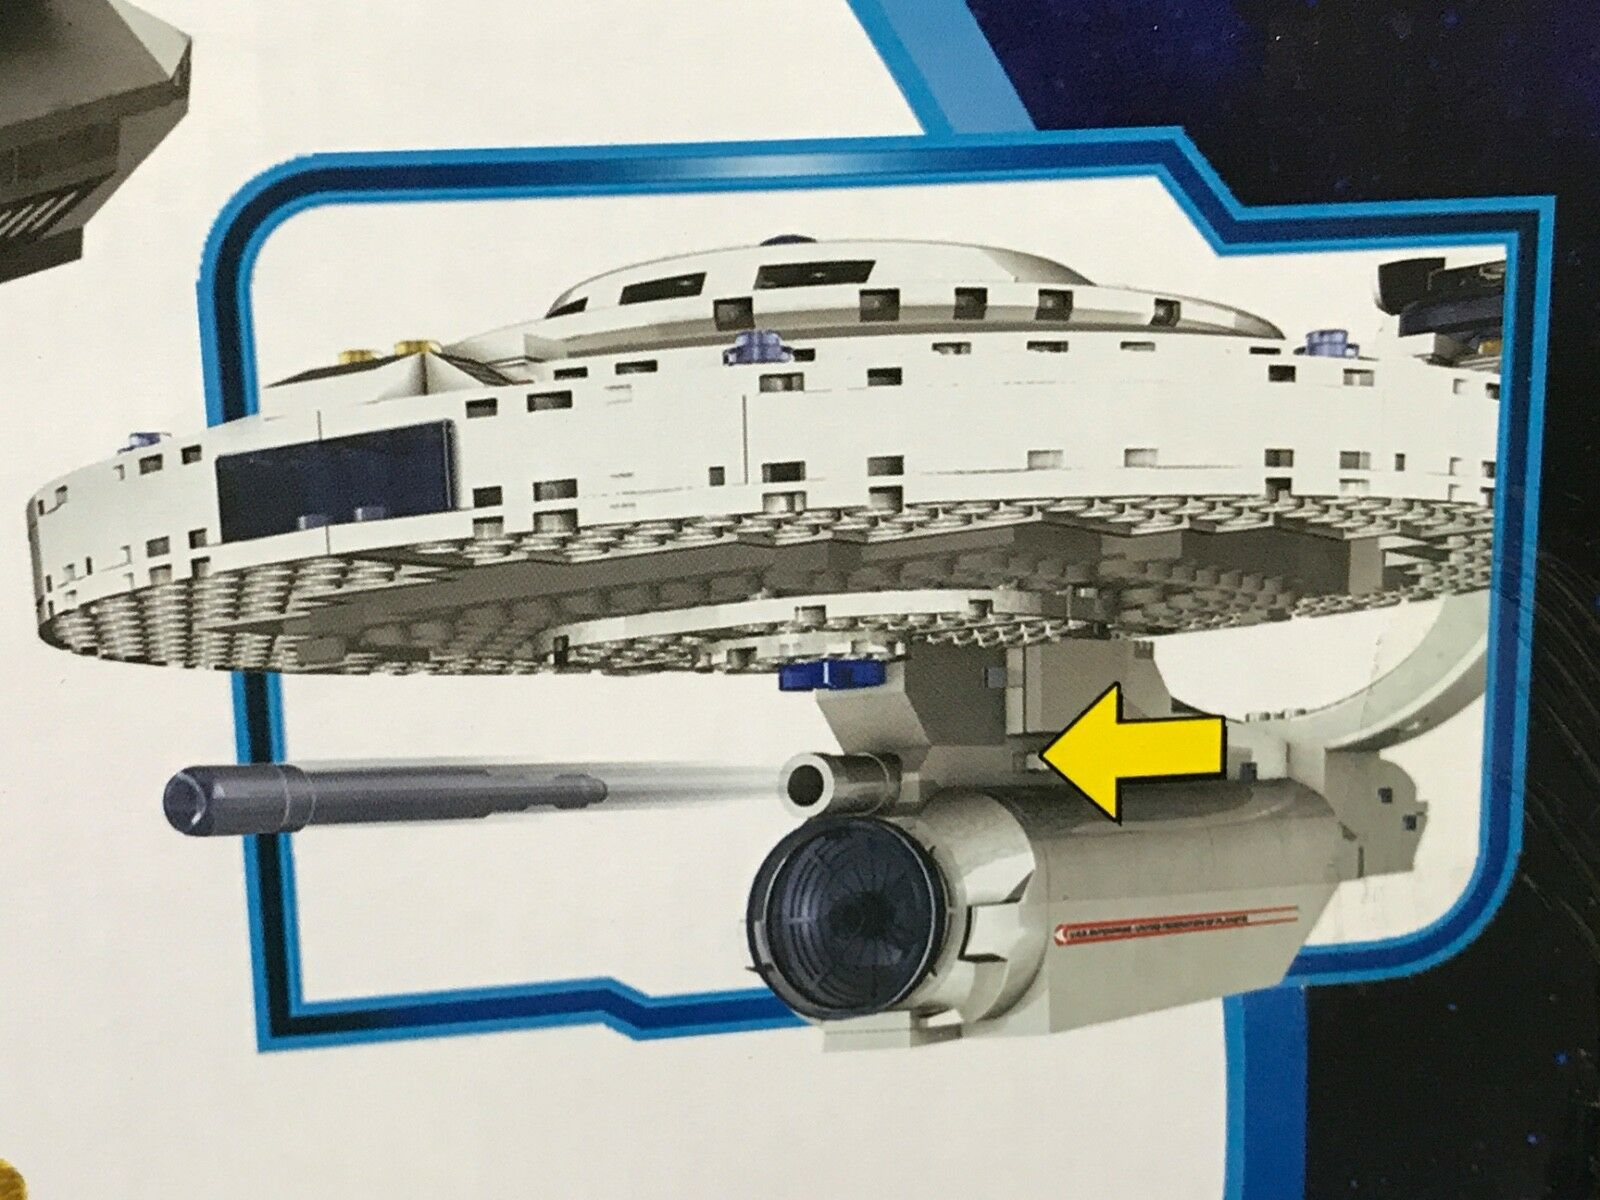 New U.S.S. U.S.S. U.S.S. ENTERPRISE Star Trek KRE-O A3137 BUILDING SET Construction SPACE SHIP 48bf1a